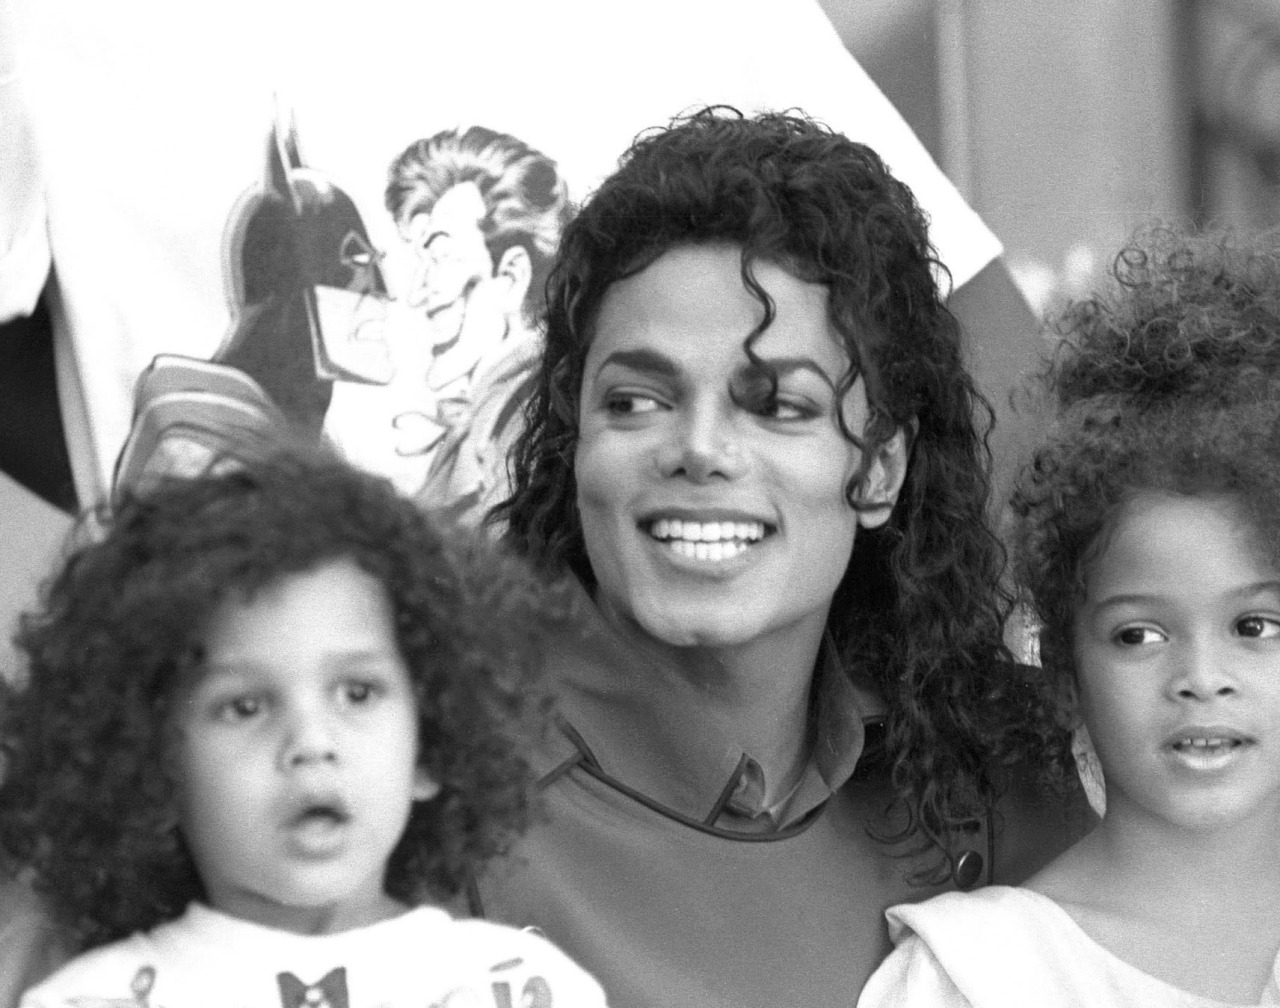 Michael with his nephew Jeremy Jackson and niece Brandi Jackson